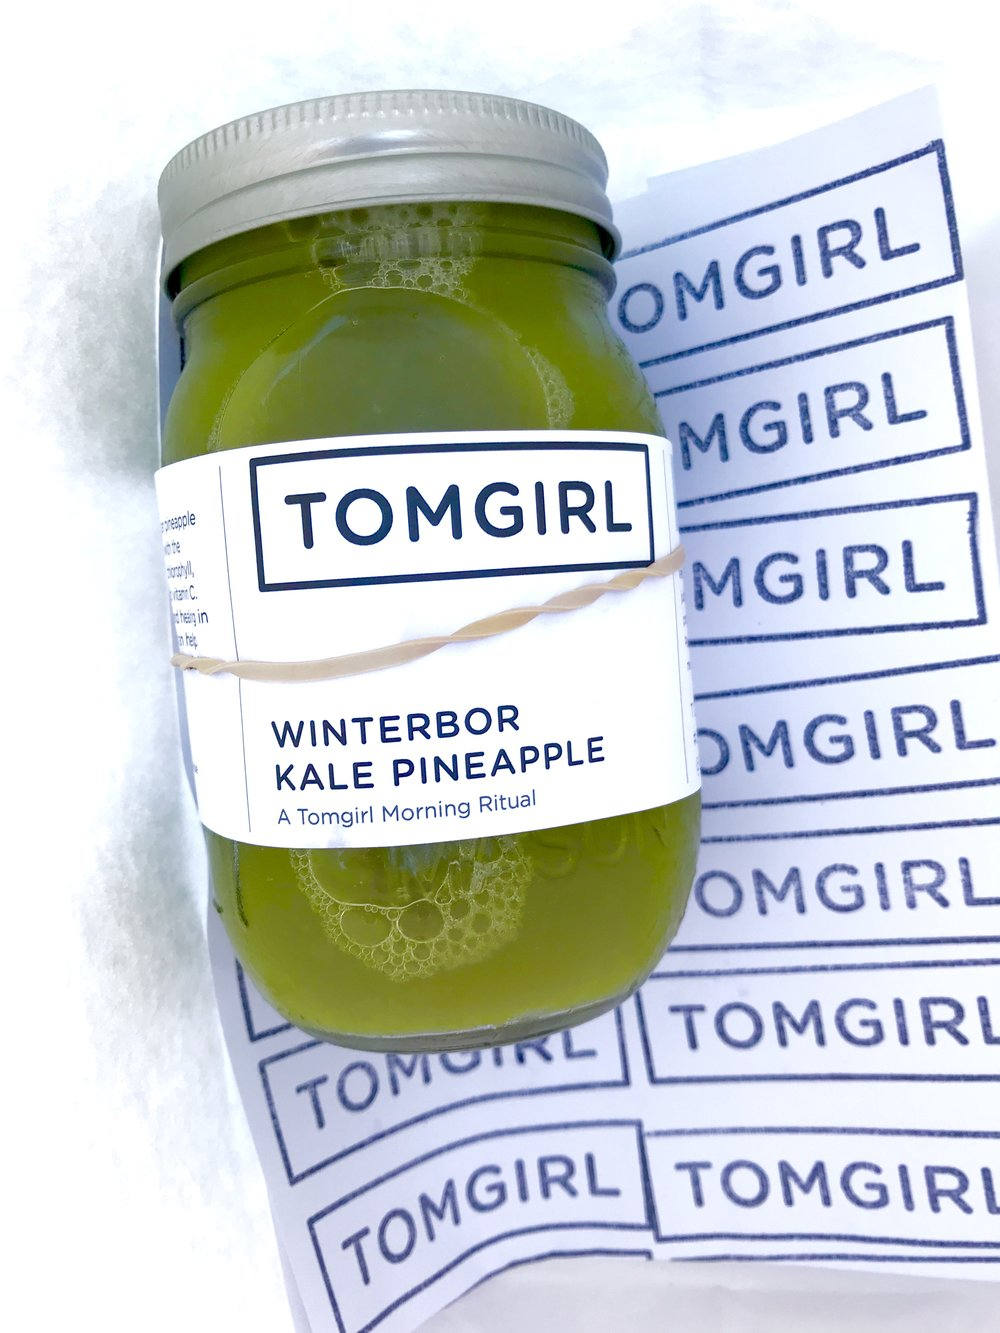 Winterbor Kale Pineapple.JPG